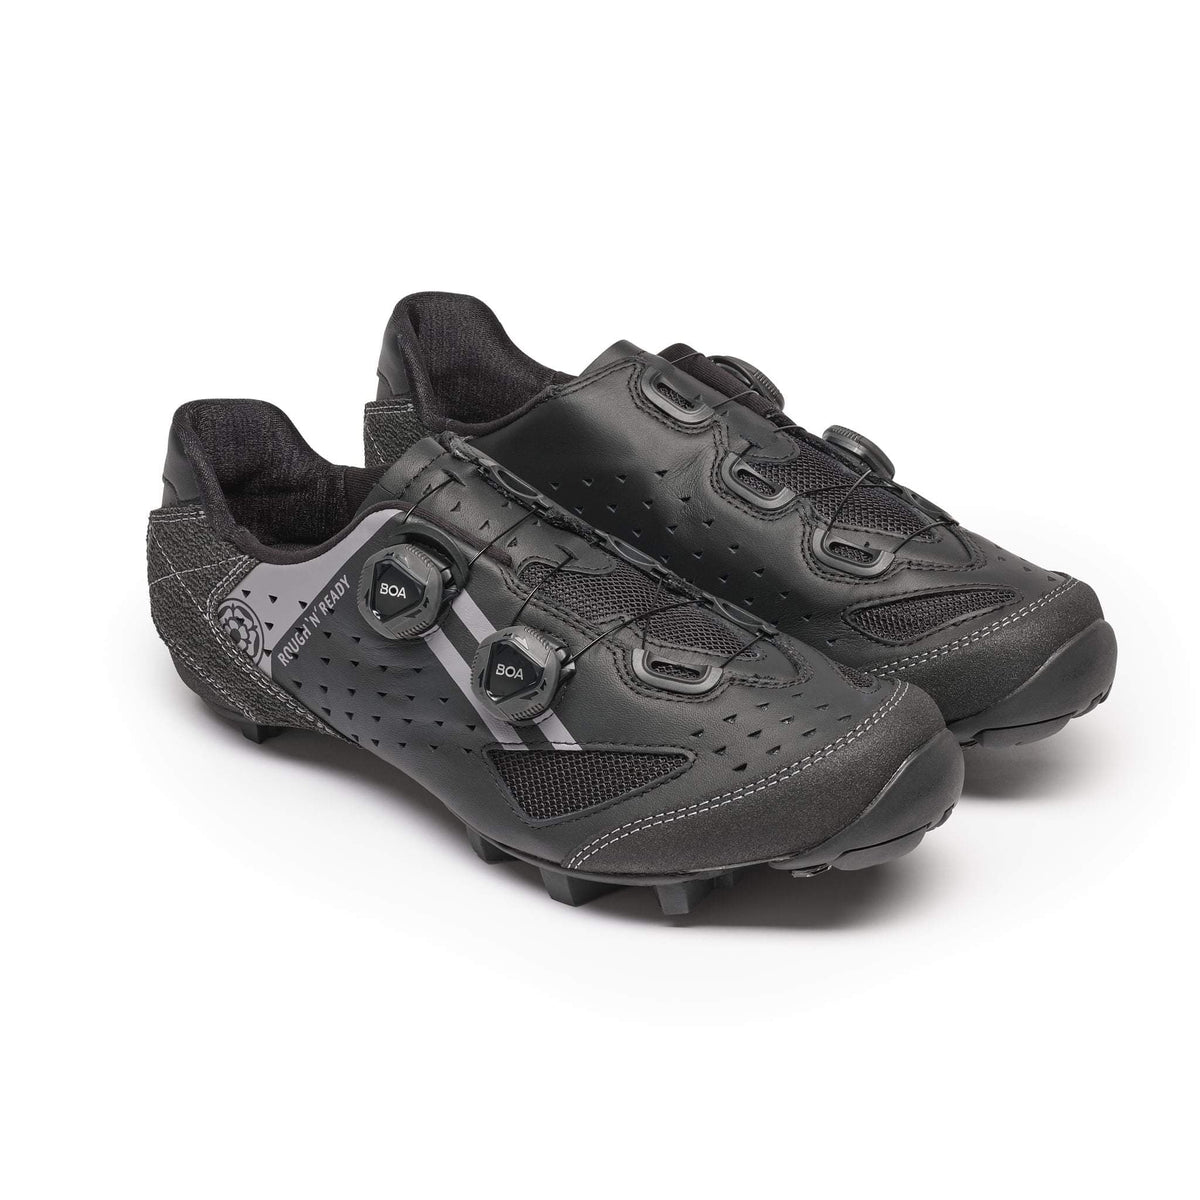 Rough 'n Ready - Carbon Gravel Shoes